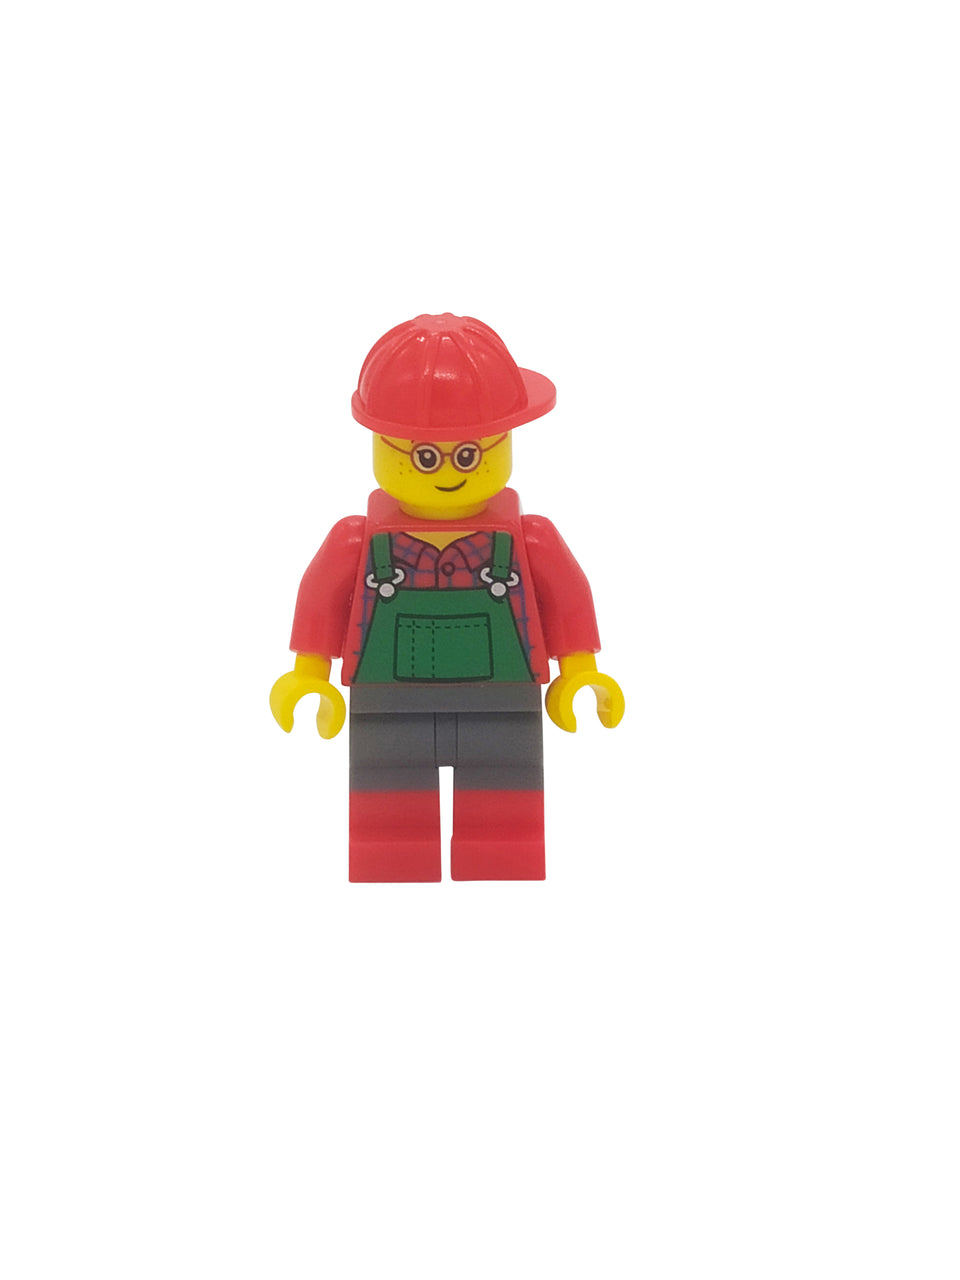 Handyman figure with a cool red Lego hat